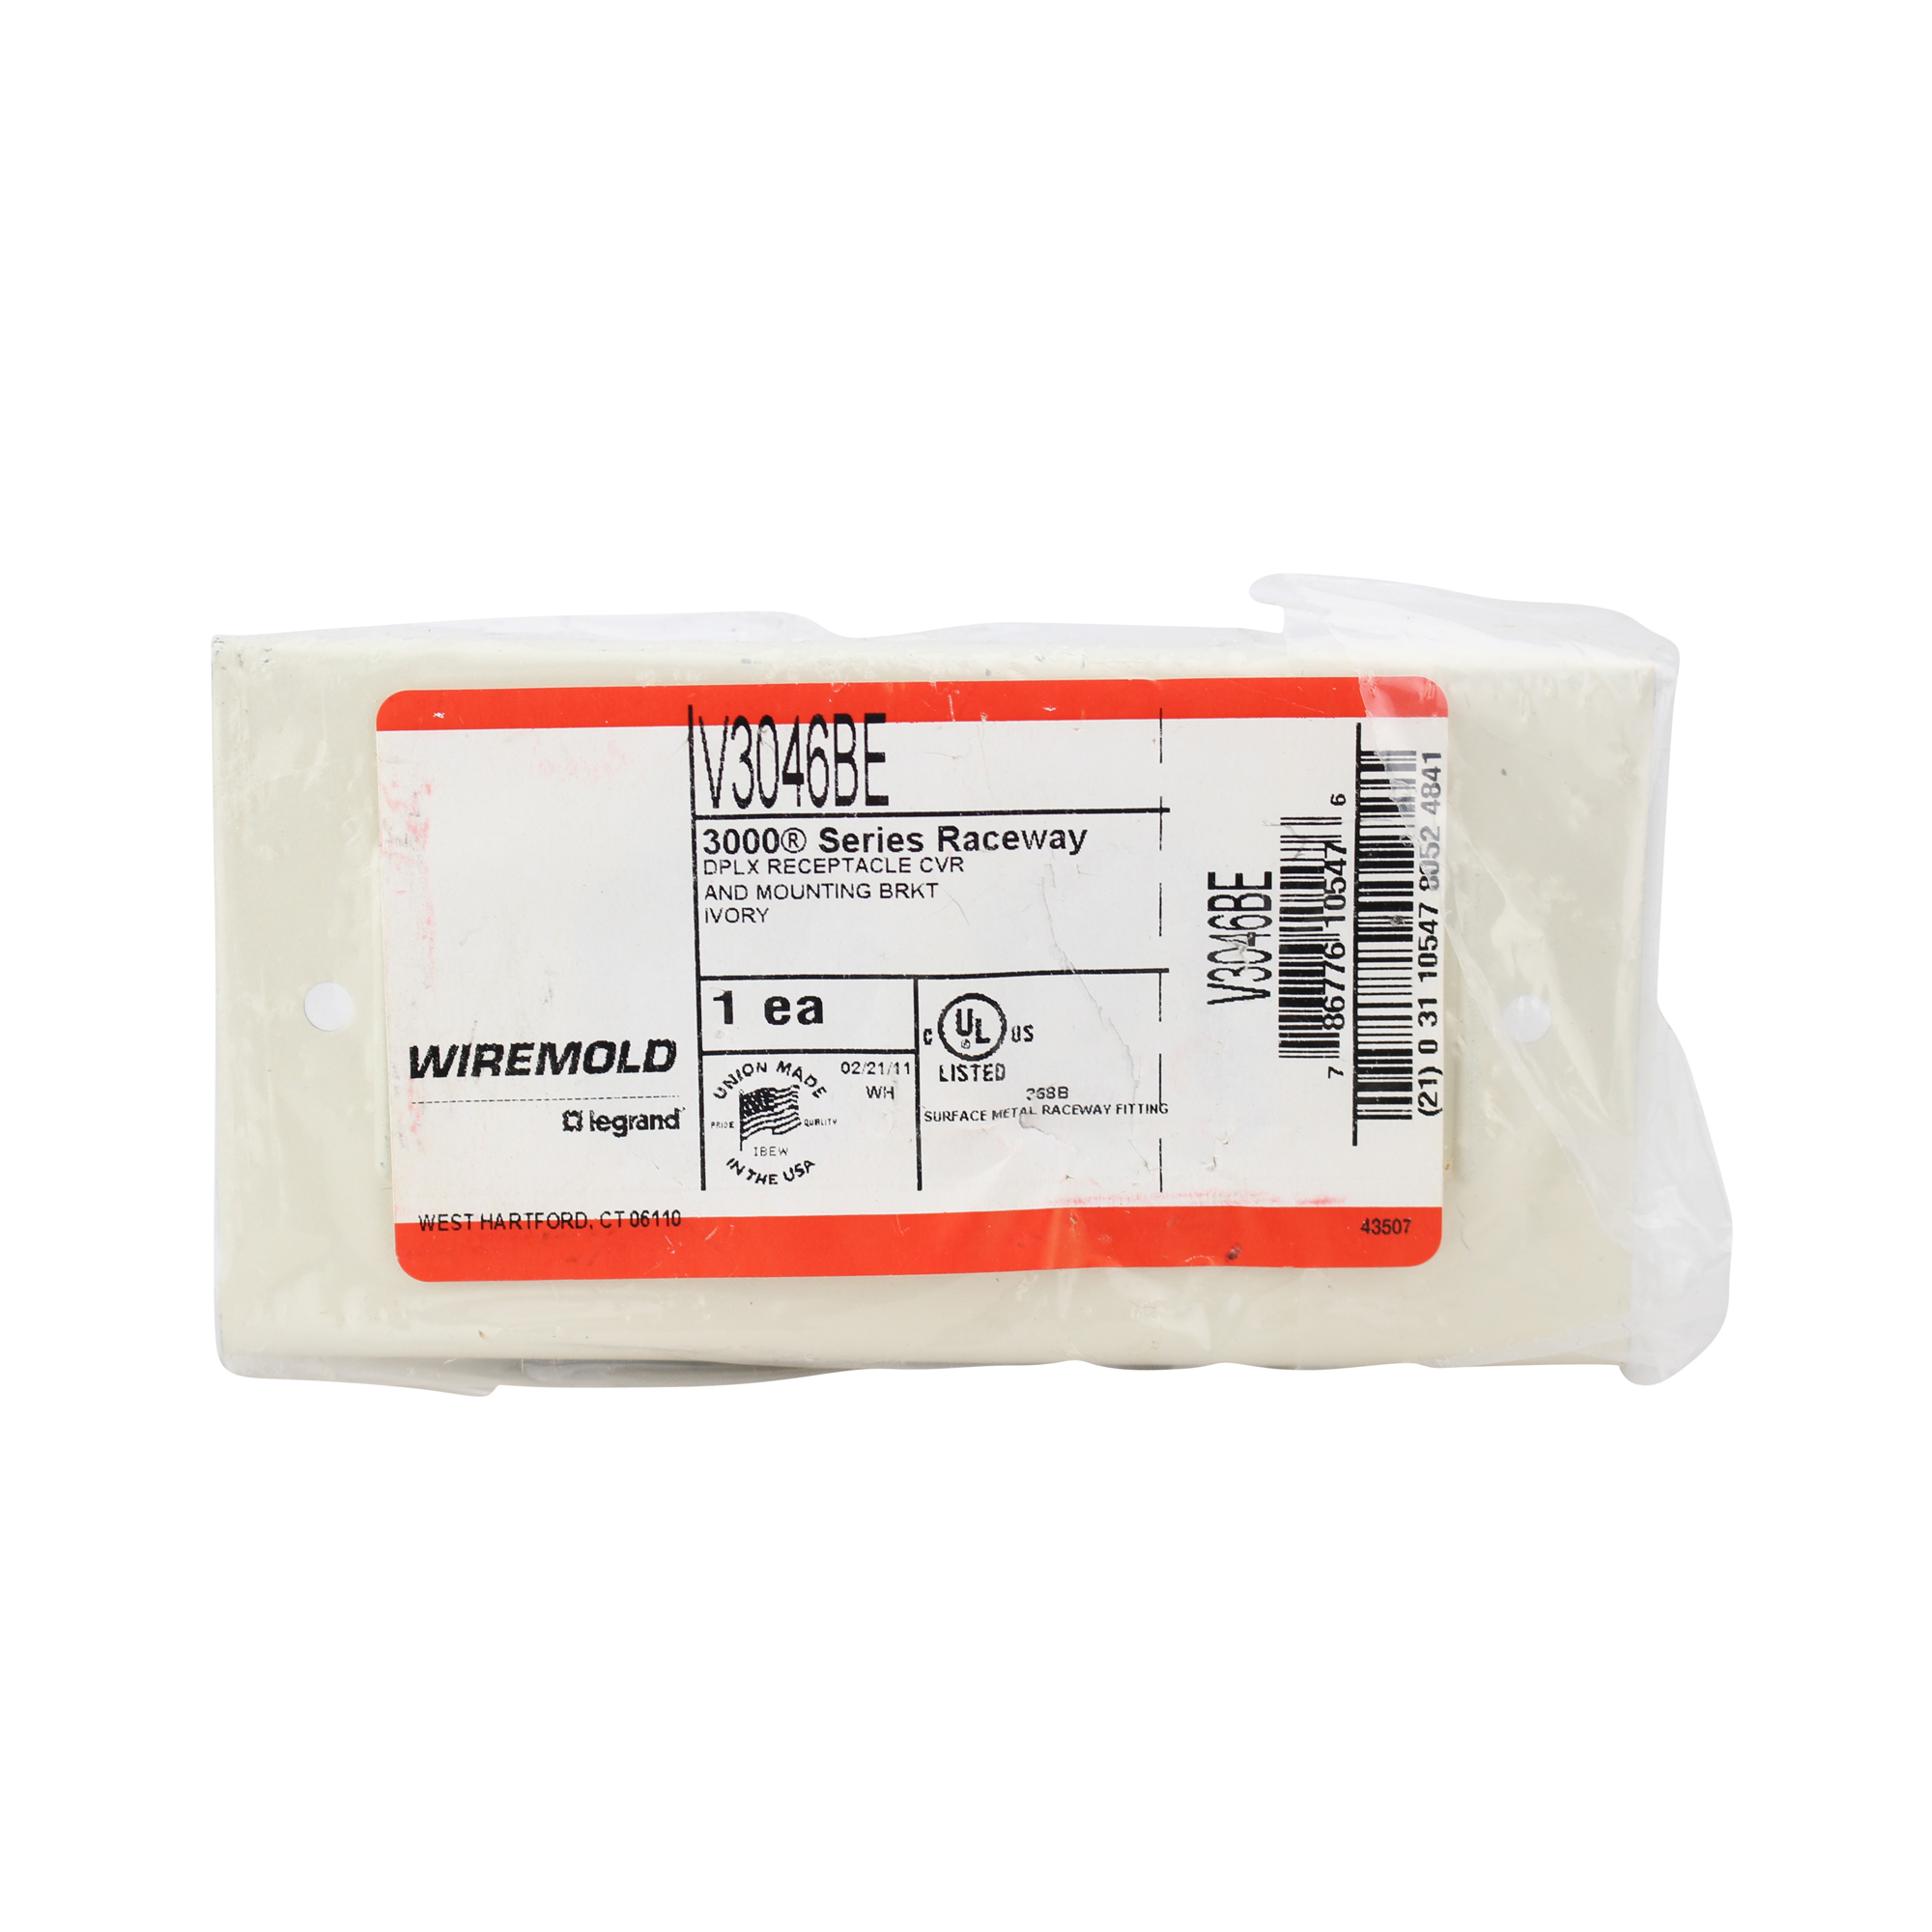 WIREMOLD V3046BE 3000 SERIES RACE-WAY DUPLEX RECEPTACLE COVER, IVORY ...